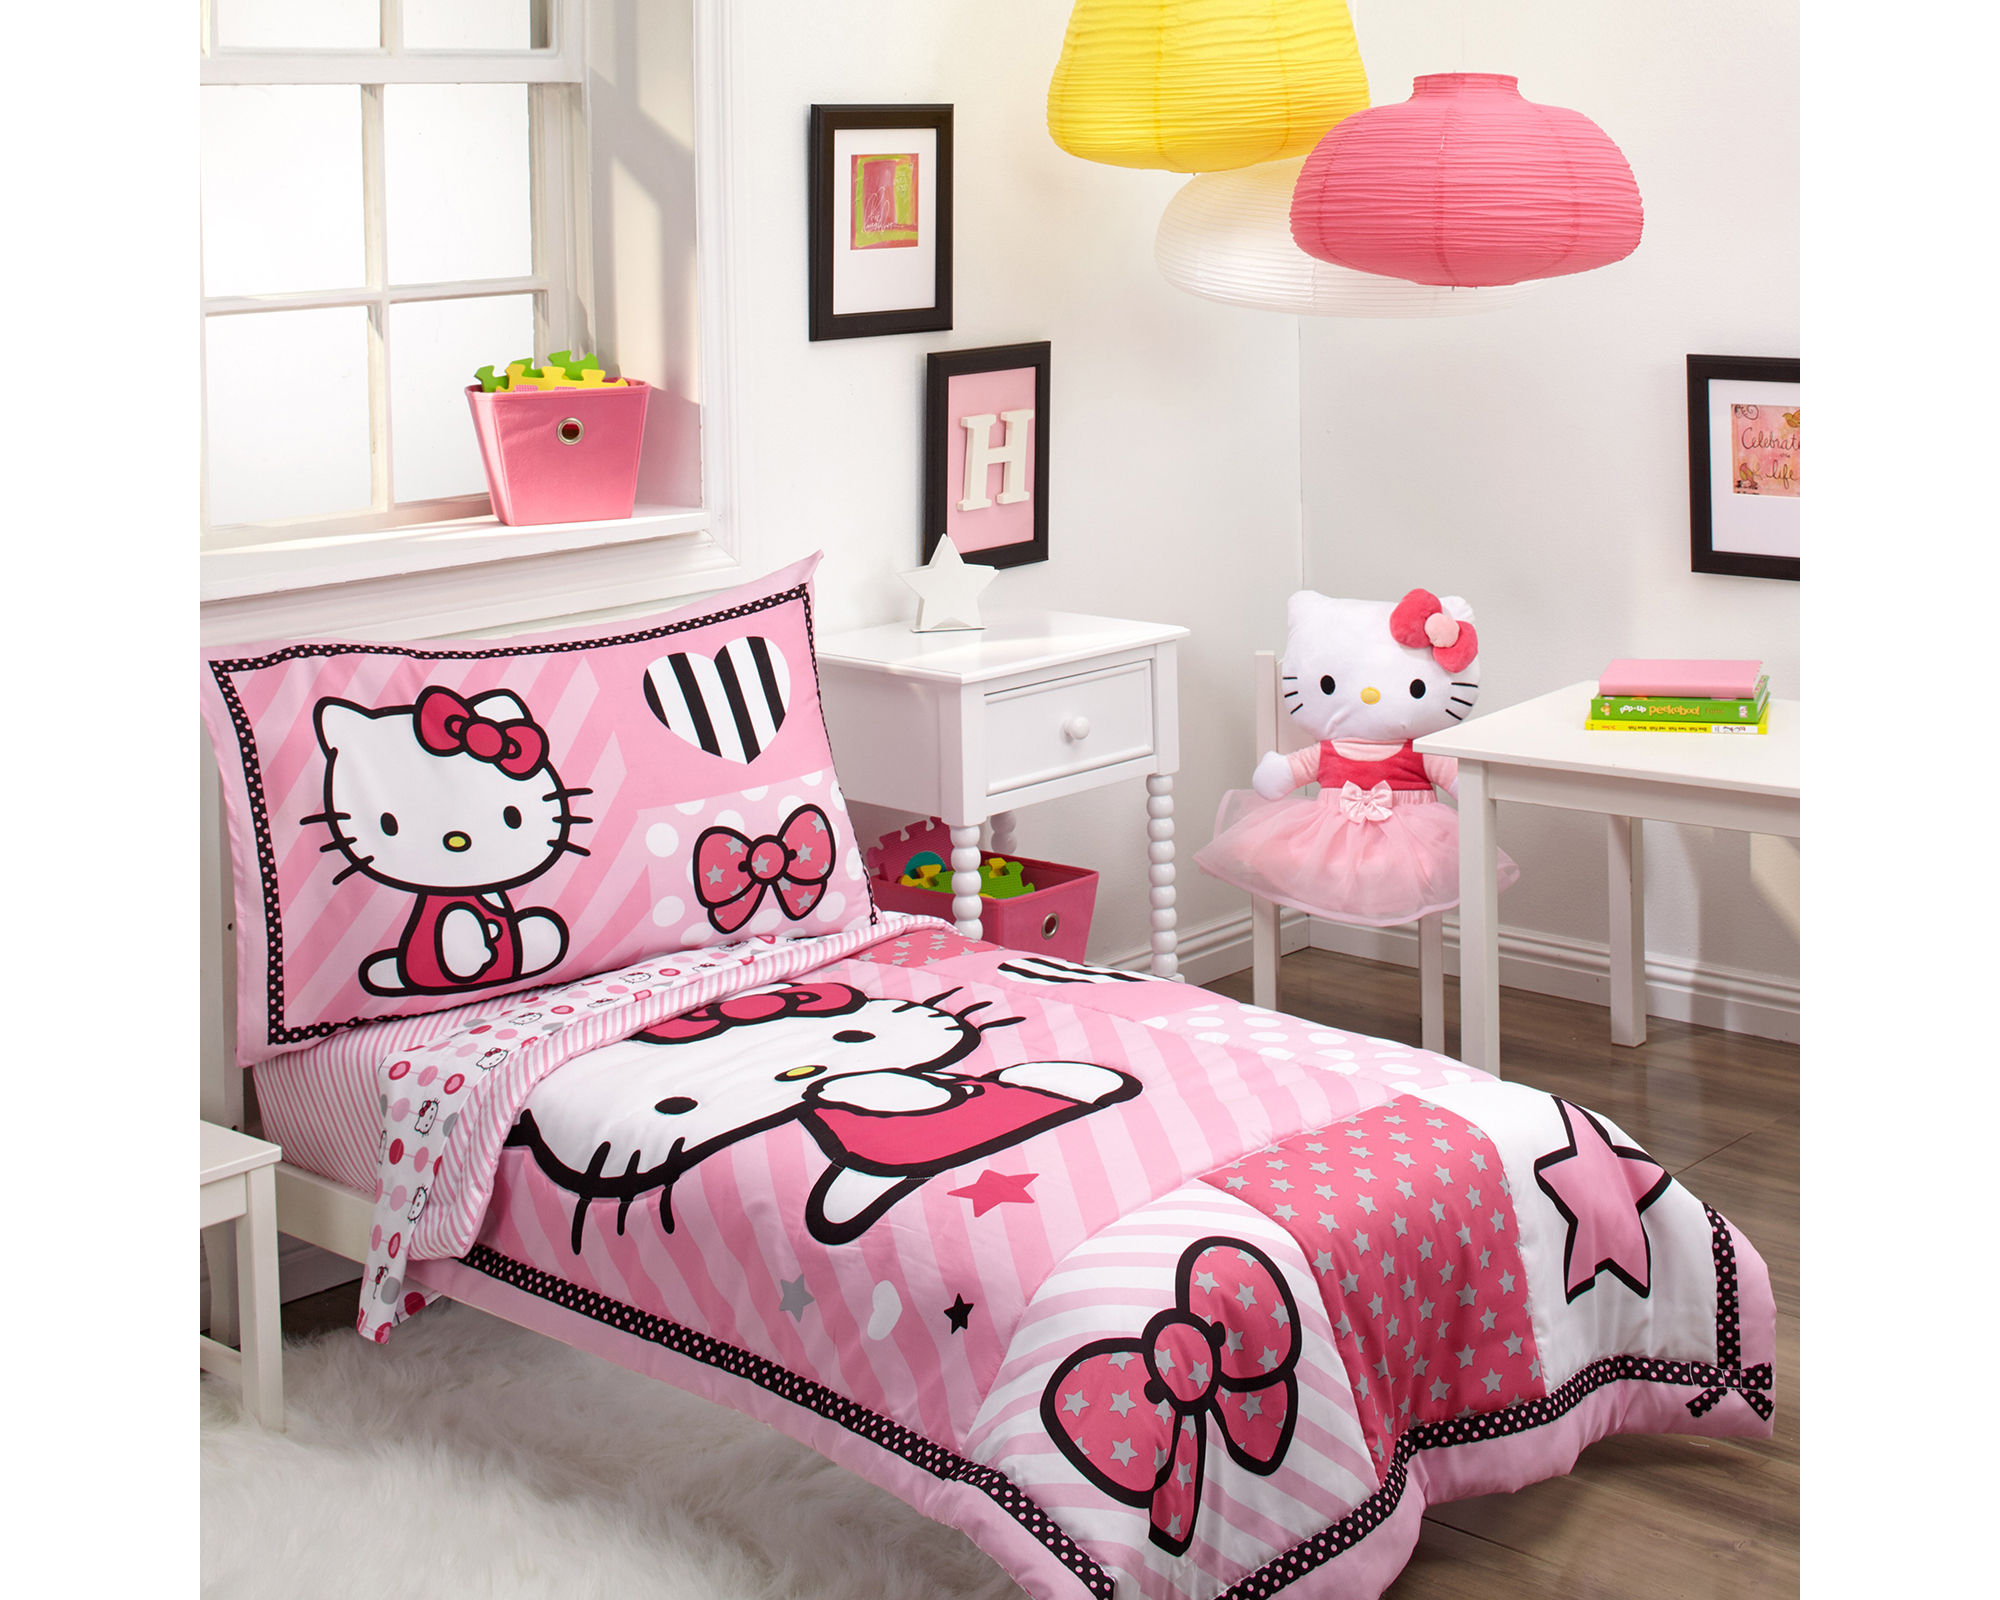 NoJo Sanrio Hello Kitty Sweet Heart 4-pc. Toddler Bedding Set